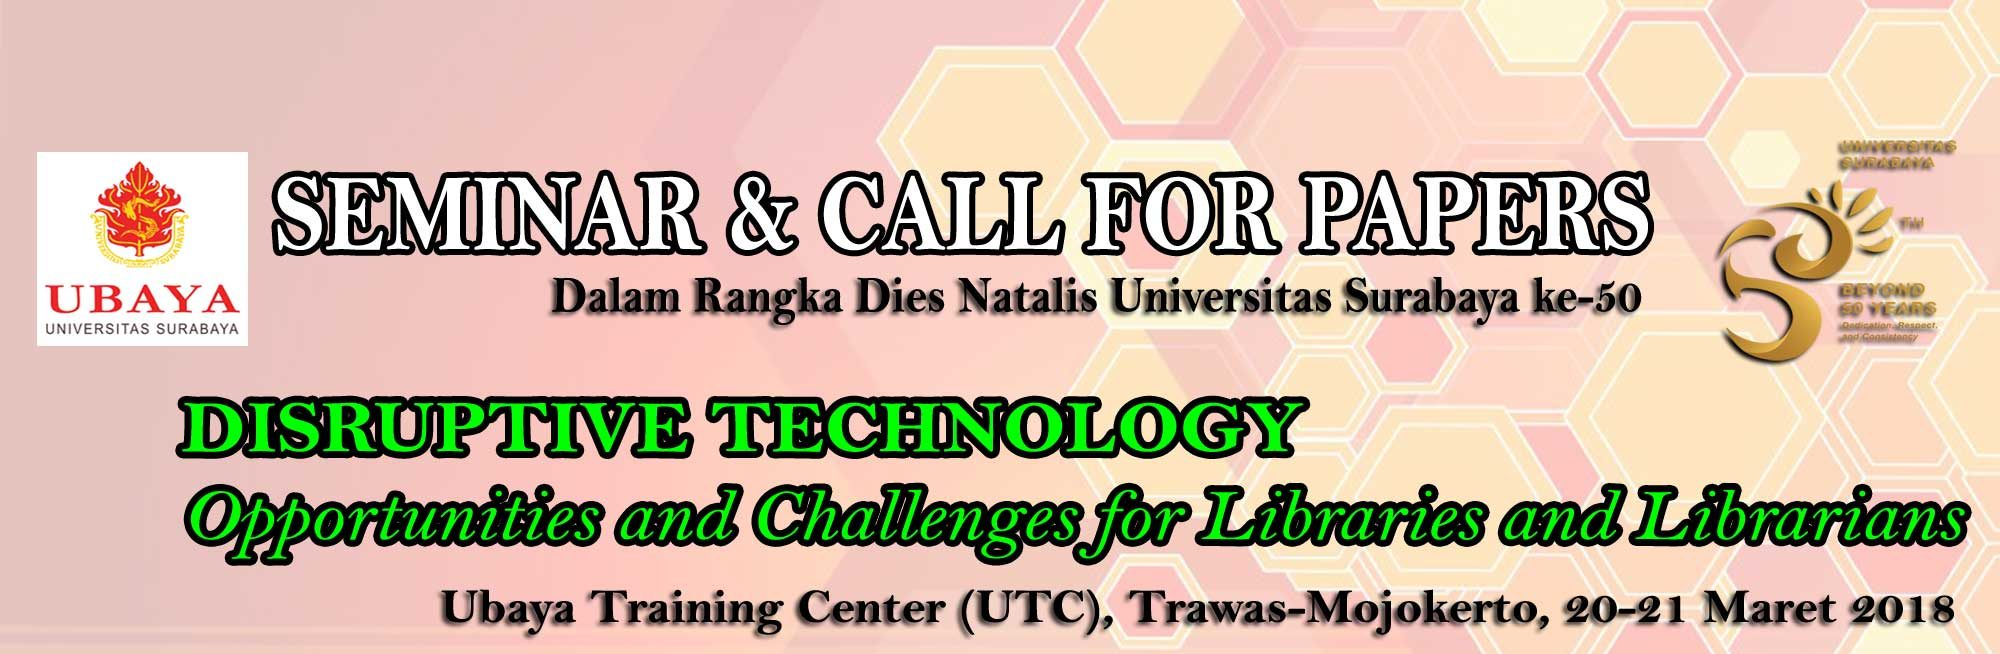 Seminar & Call for Papers Disruptive Technology